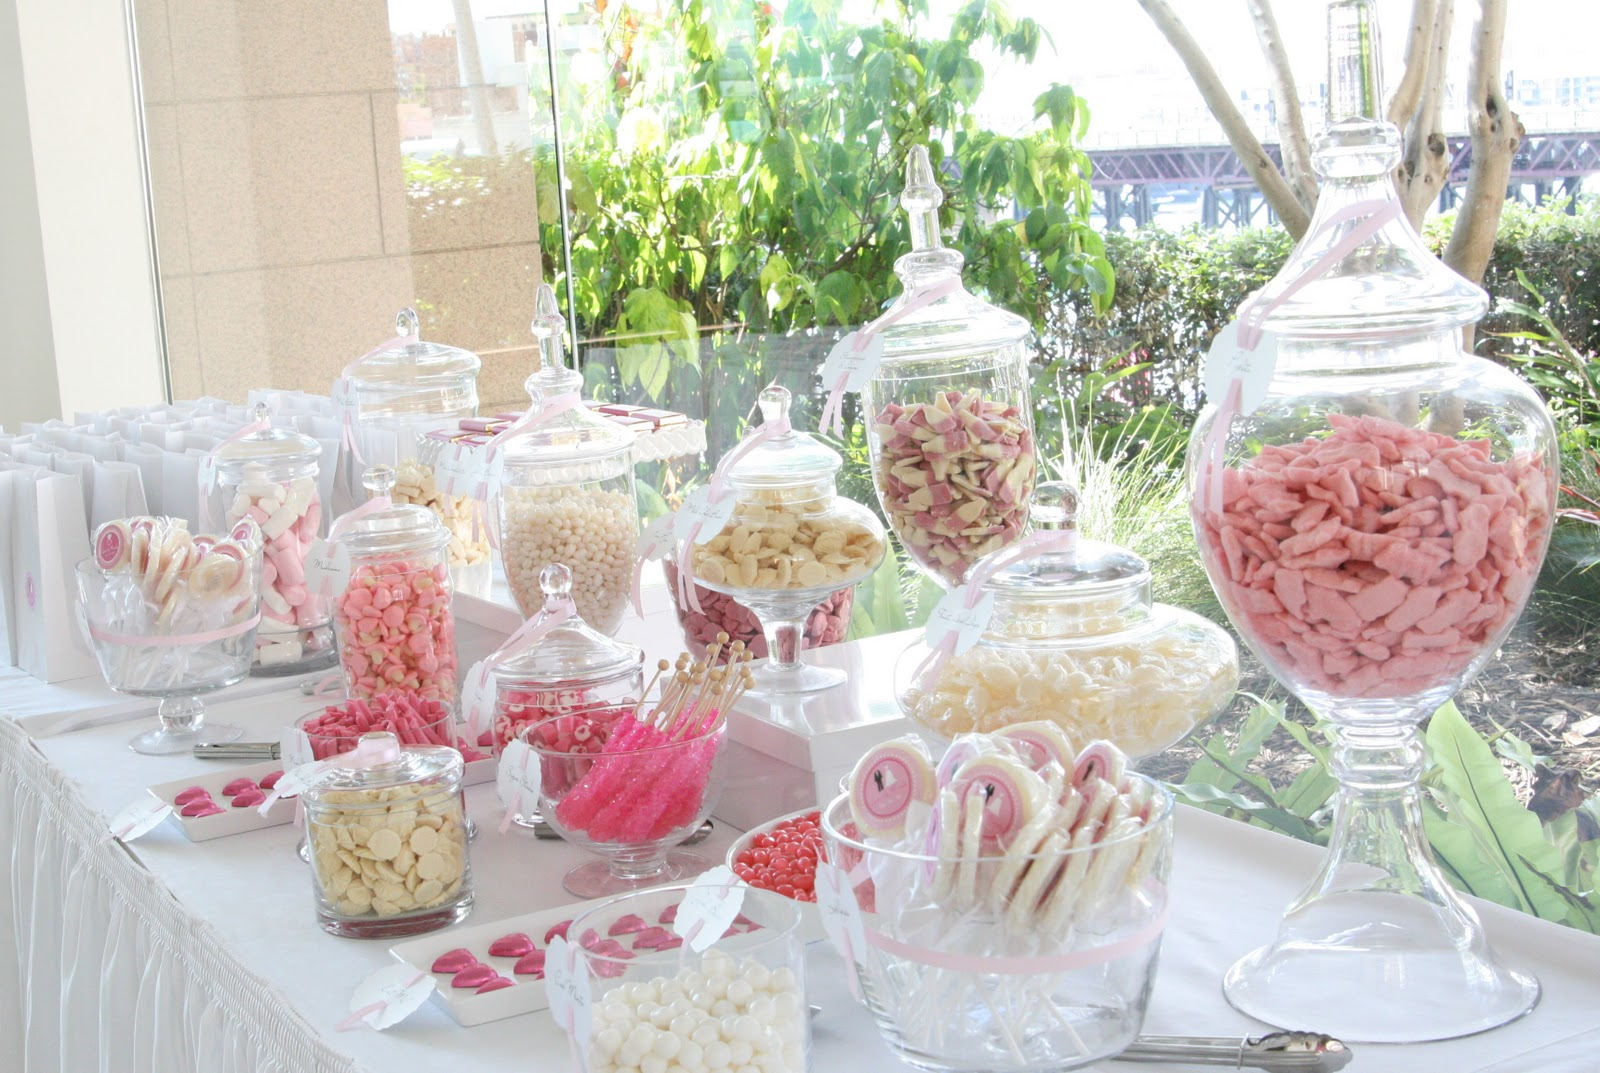 A Pink And White Wedding Candy Table  Sweet Style. College Graduation Announcements Templates. Free Catering Contract Template. Car Payment Agreement Template. Make Your Own Day Of The Dead Costume. Letter Of Agreement Template Free. Peacock Wedding Invitations Template. Dr Seuss Posters. Clinical Psychology Graduate Programs